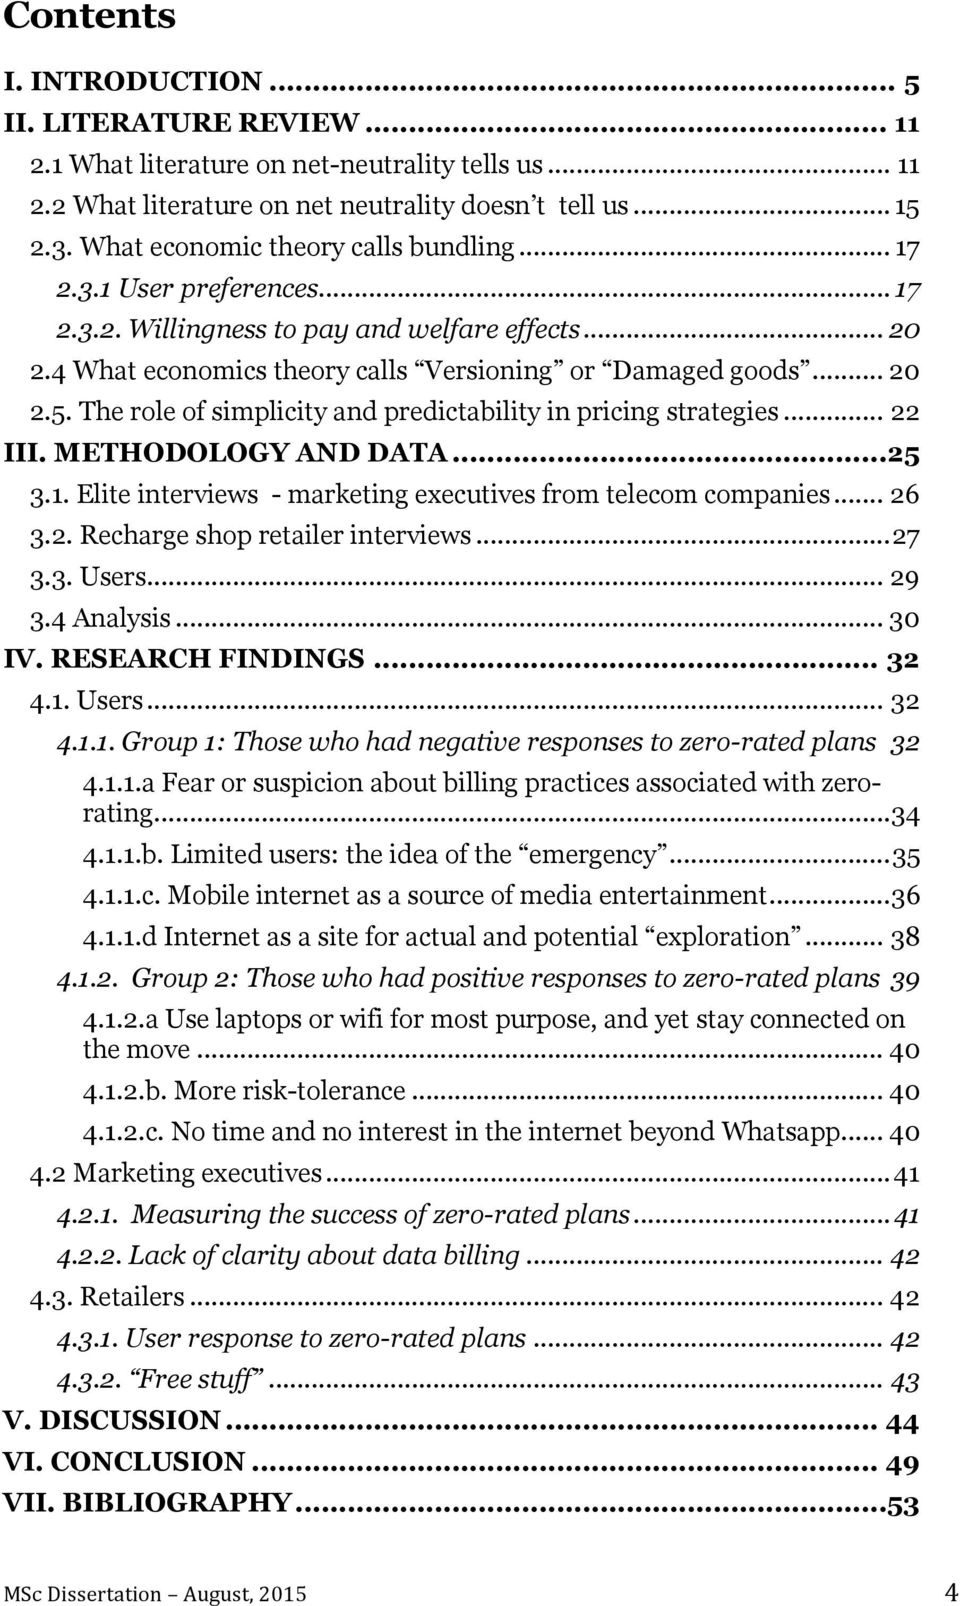 The role of simplicity and predictability in pricing strategies... 22 III. METHODOLOGY AND DATA... 25 3.1. Elite interviews - marketing executives from telecom companies... 26 3.2. Recharge shop retailer interviews.